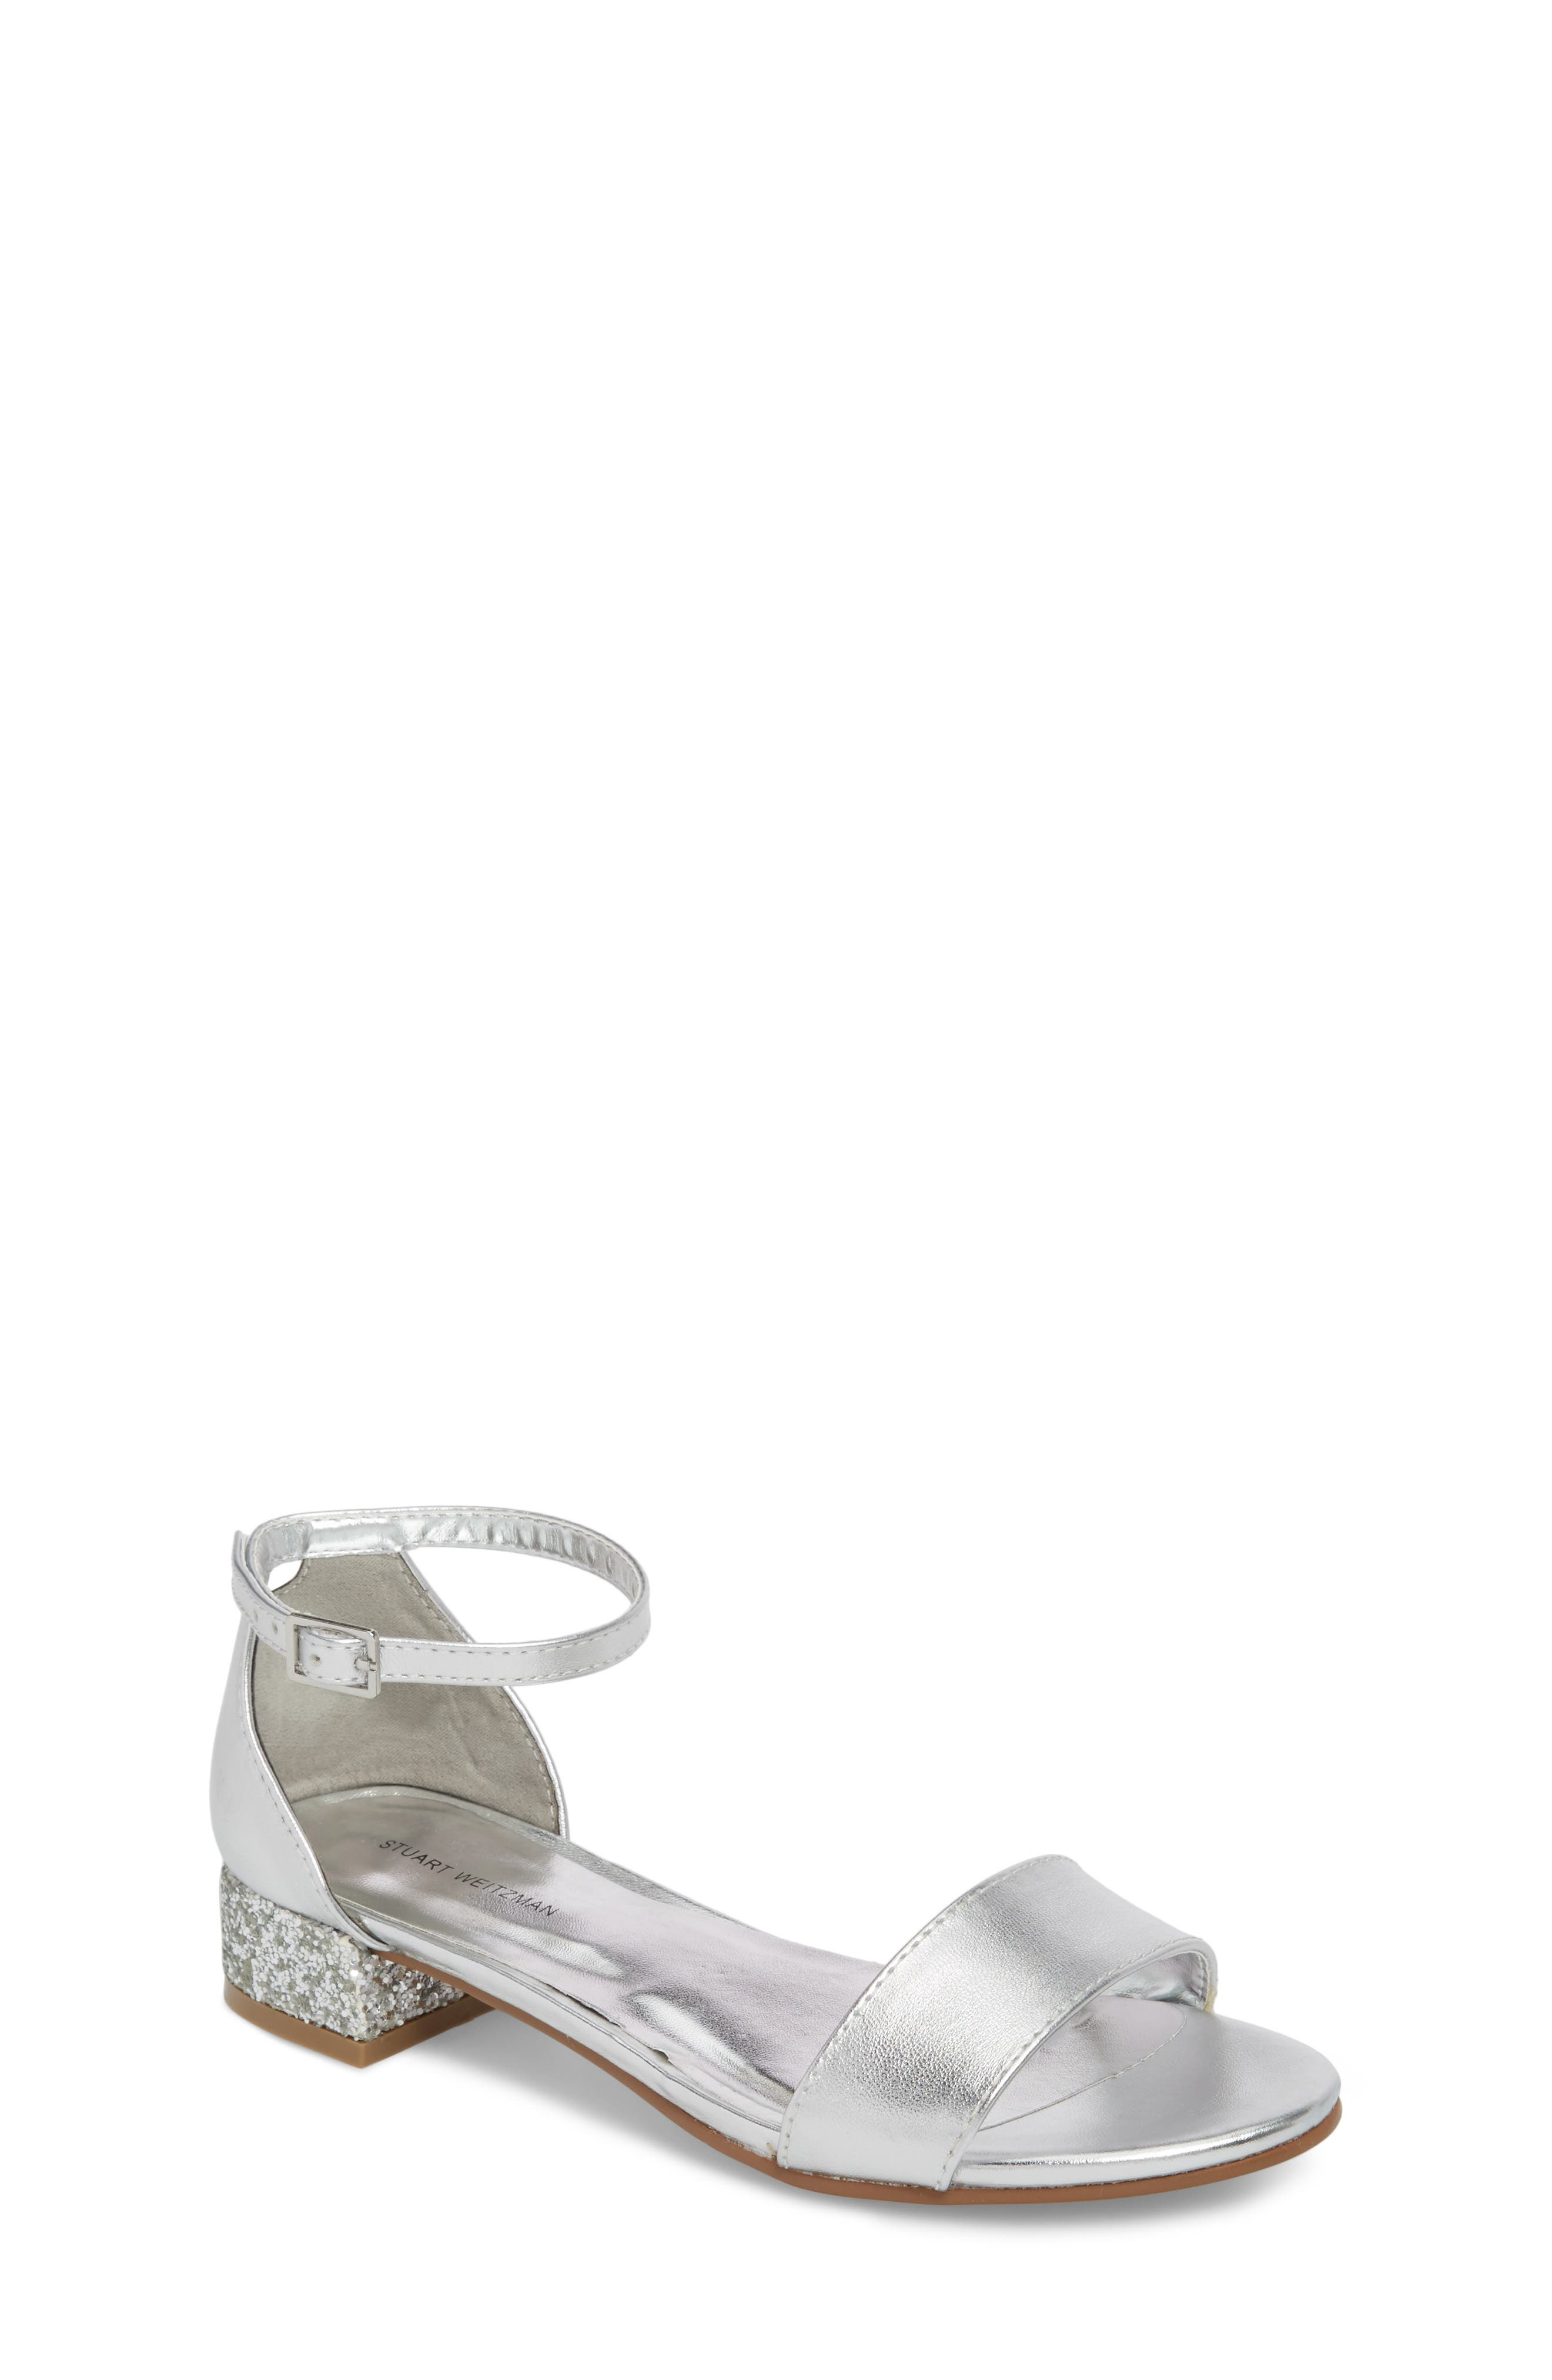 Stuart Weitzman Penelope Glitter Heel Sandal (Toddler, Little Kid & Big Kid)